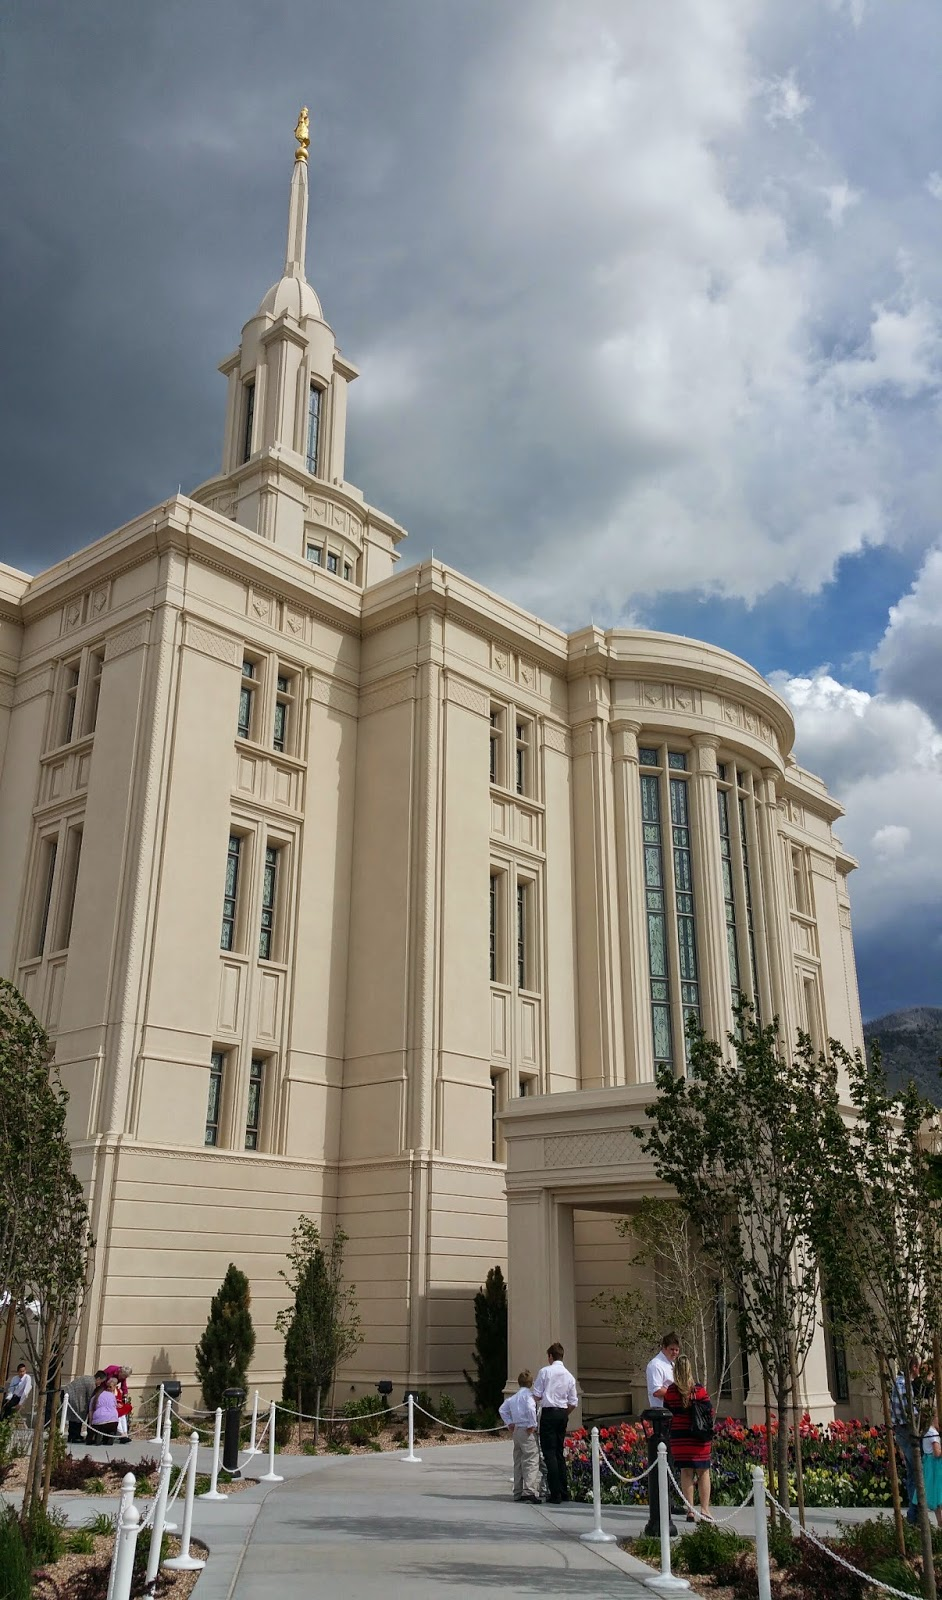 A Few Years Ago I Did A Blog Post About My Siblings And I Visiting The  Brigham City Temple Open House. An Open House Is When The Public Can Come  See An ...